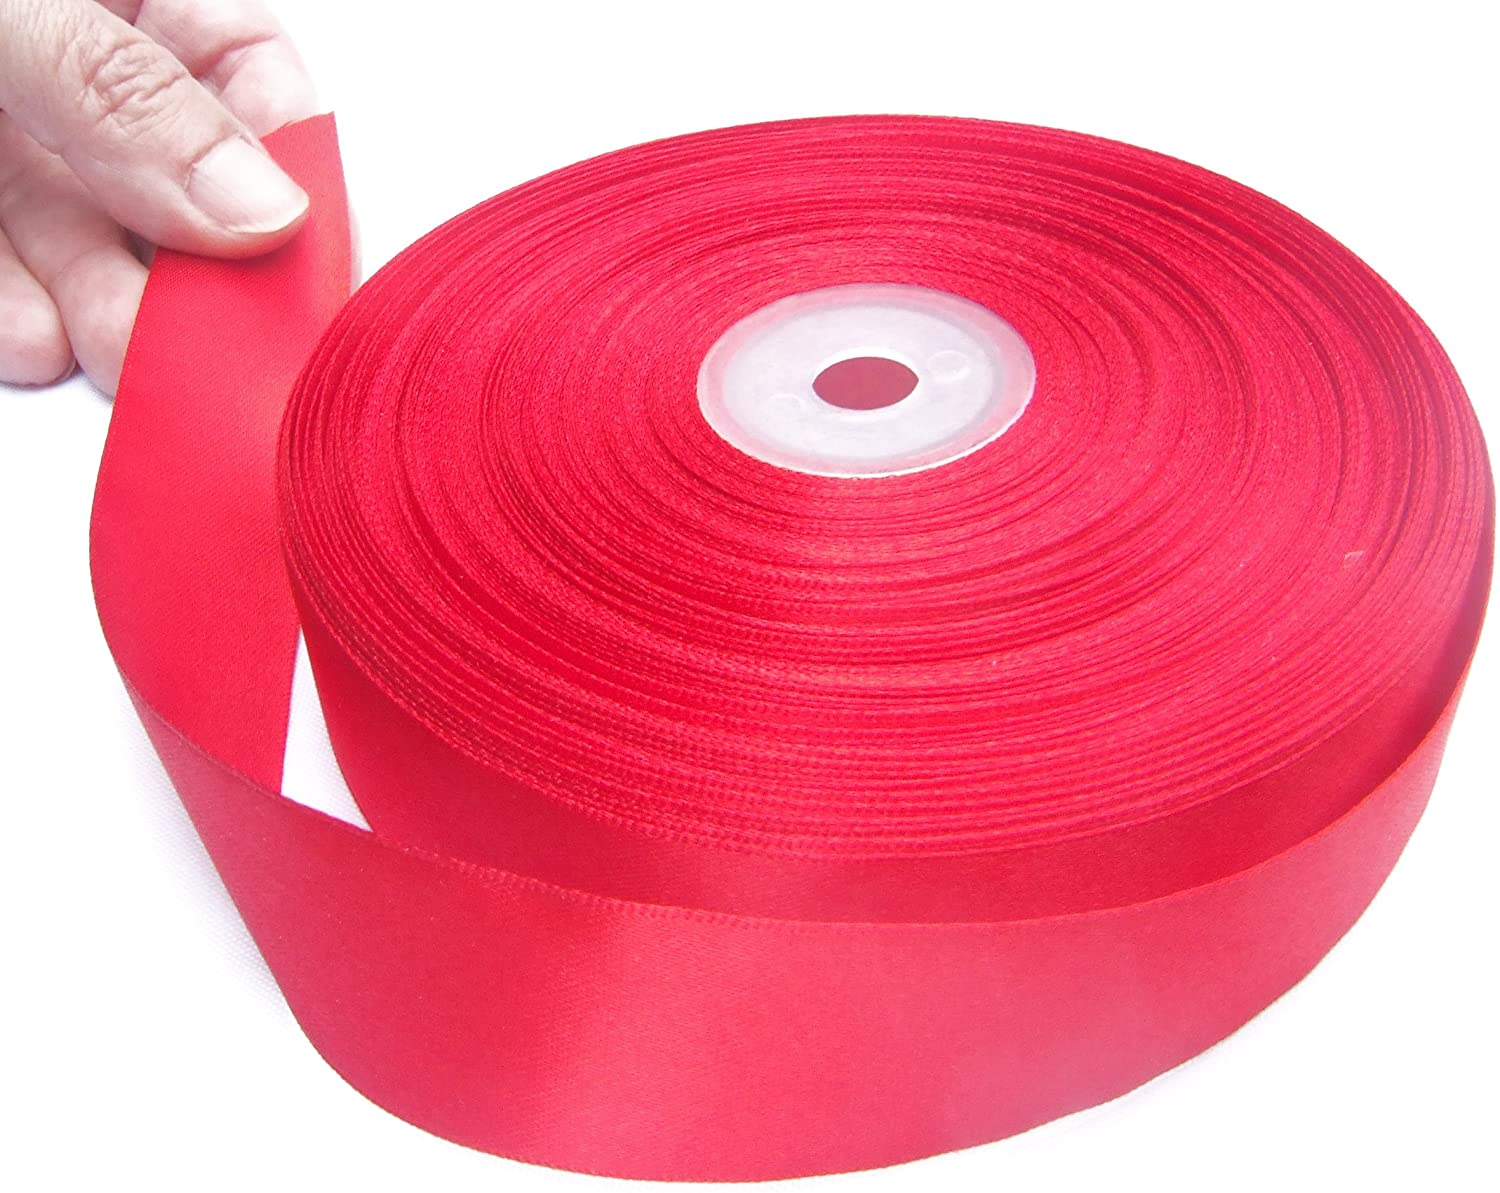 Red 1 Inch Satin Ribbon. 50 Yards Gift Wrapping Spool by Drency Ribbons